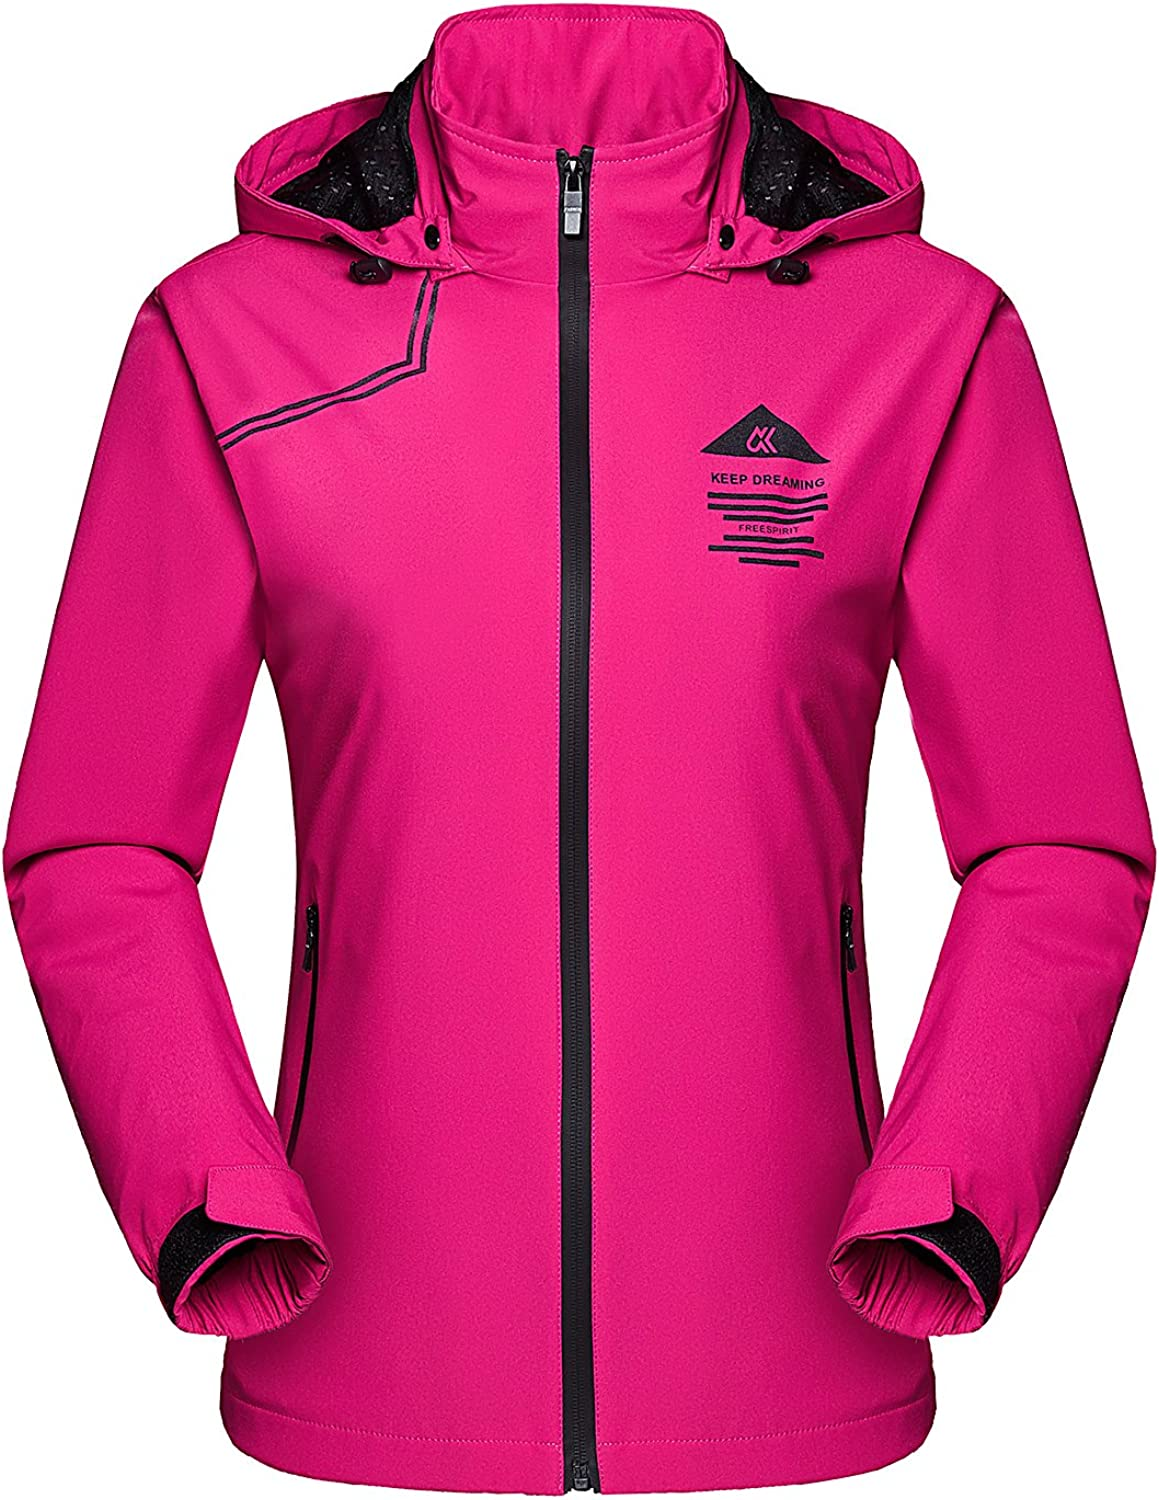 MAGCOMSEN Women's Hooded Lightweight Windbreaker Jacket UV Predect Windproof Jacket Outdoor Running Top